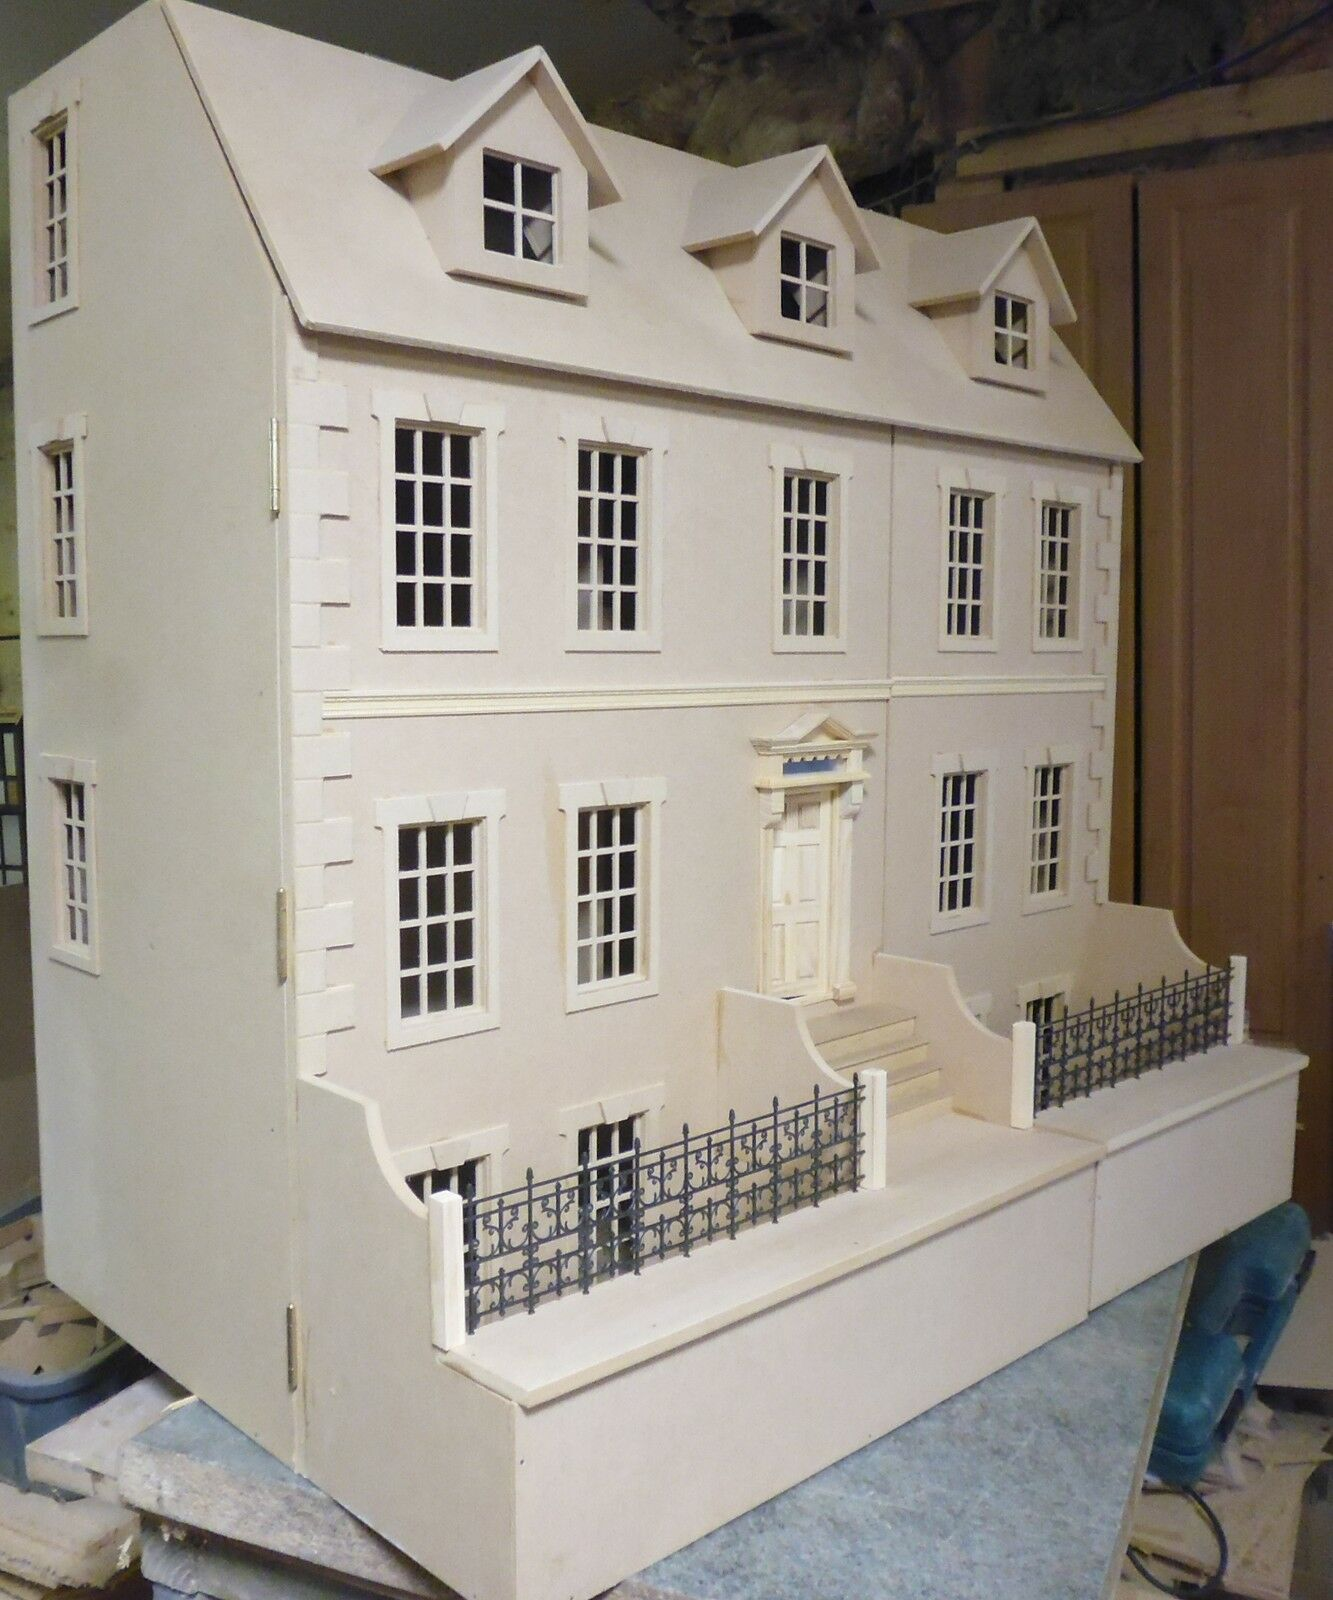 1 12 scale Dolls House Dalton House 3ft wide with Basement KIT by DHD